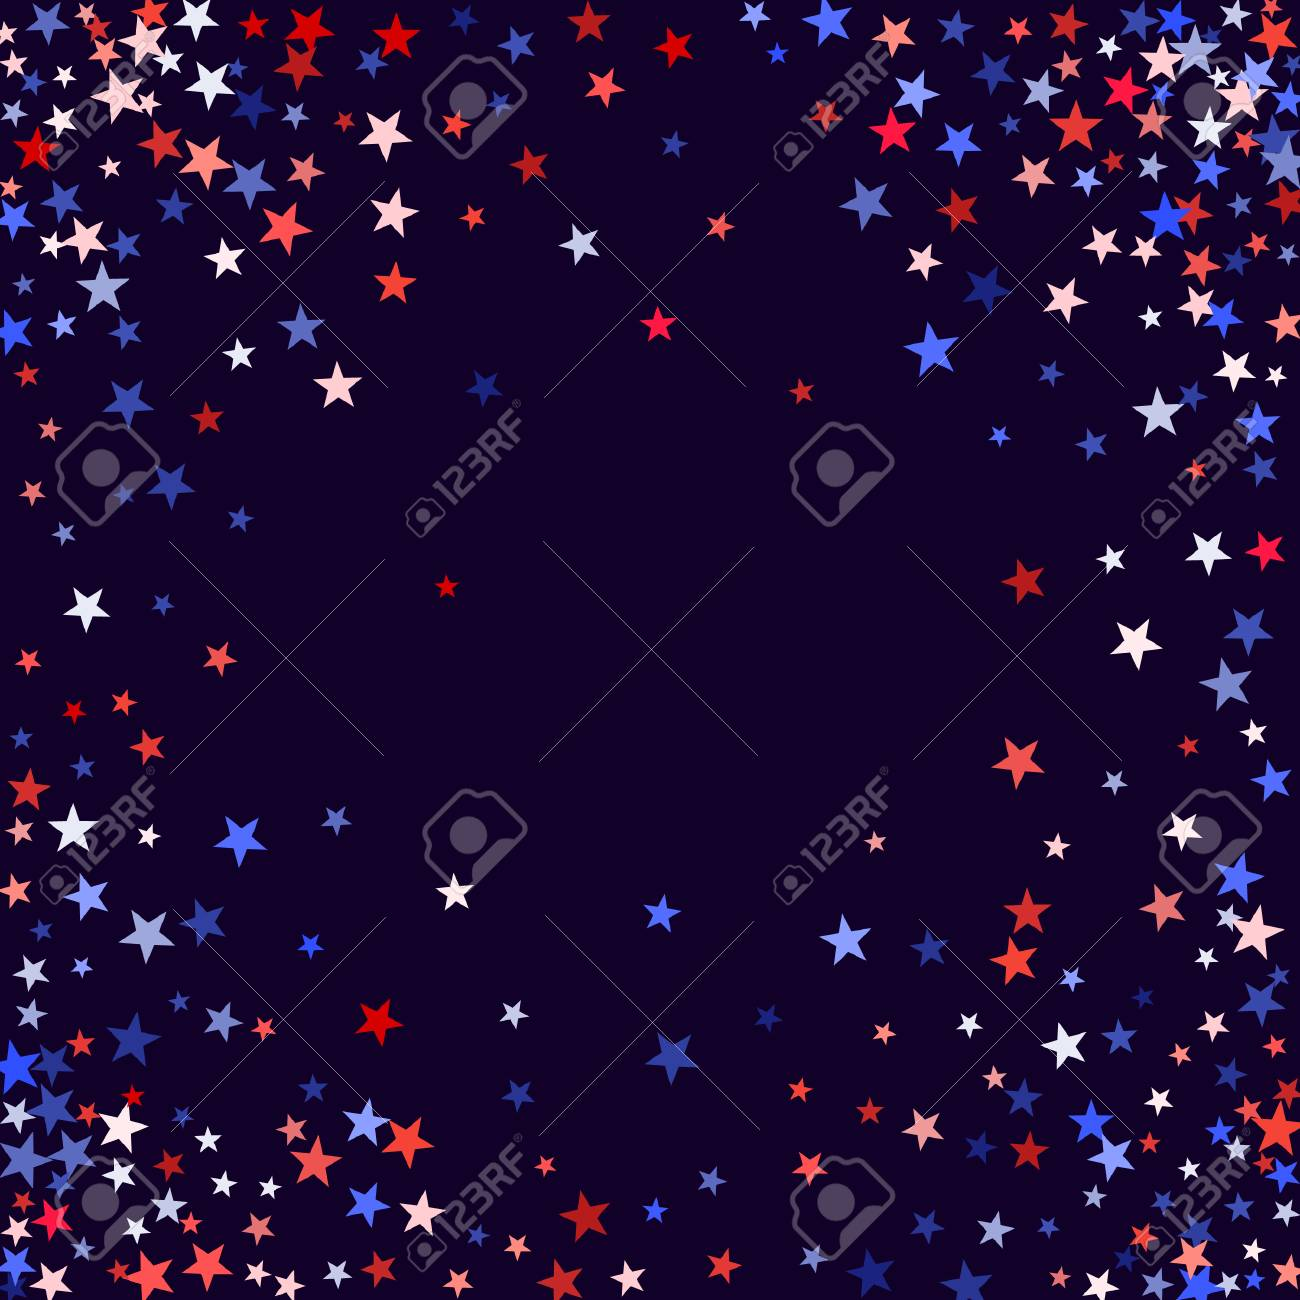 3423efacded July 4 background in United States flag colors. Red and blue stars border  frame for American Independence on President Day card. July 4